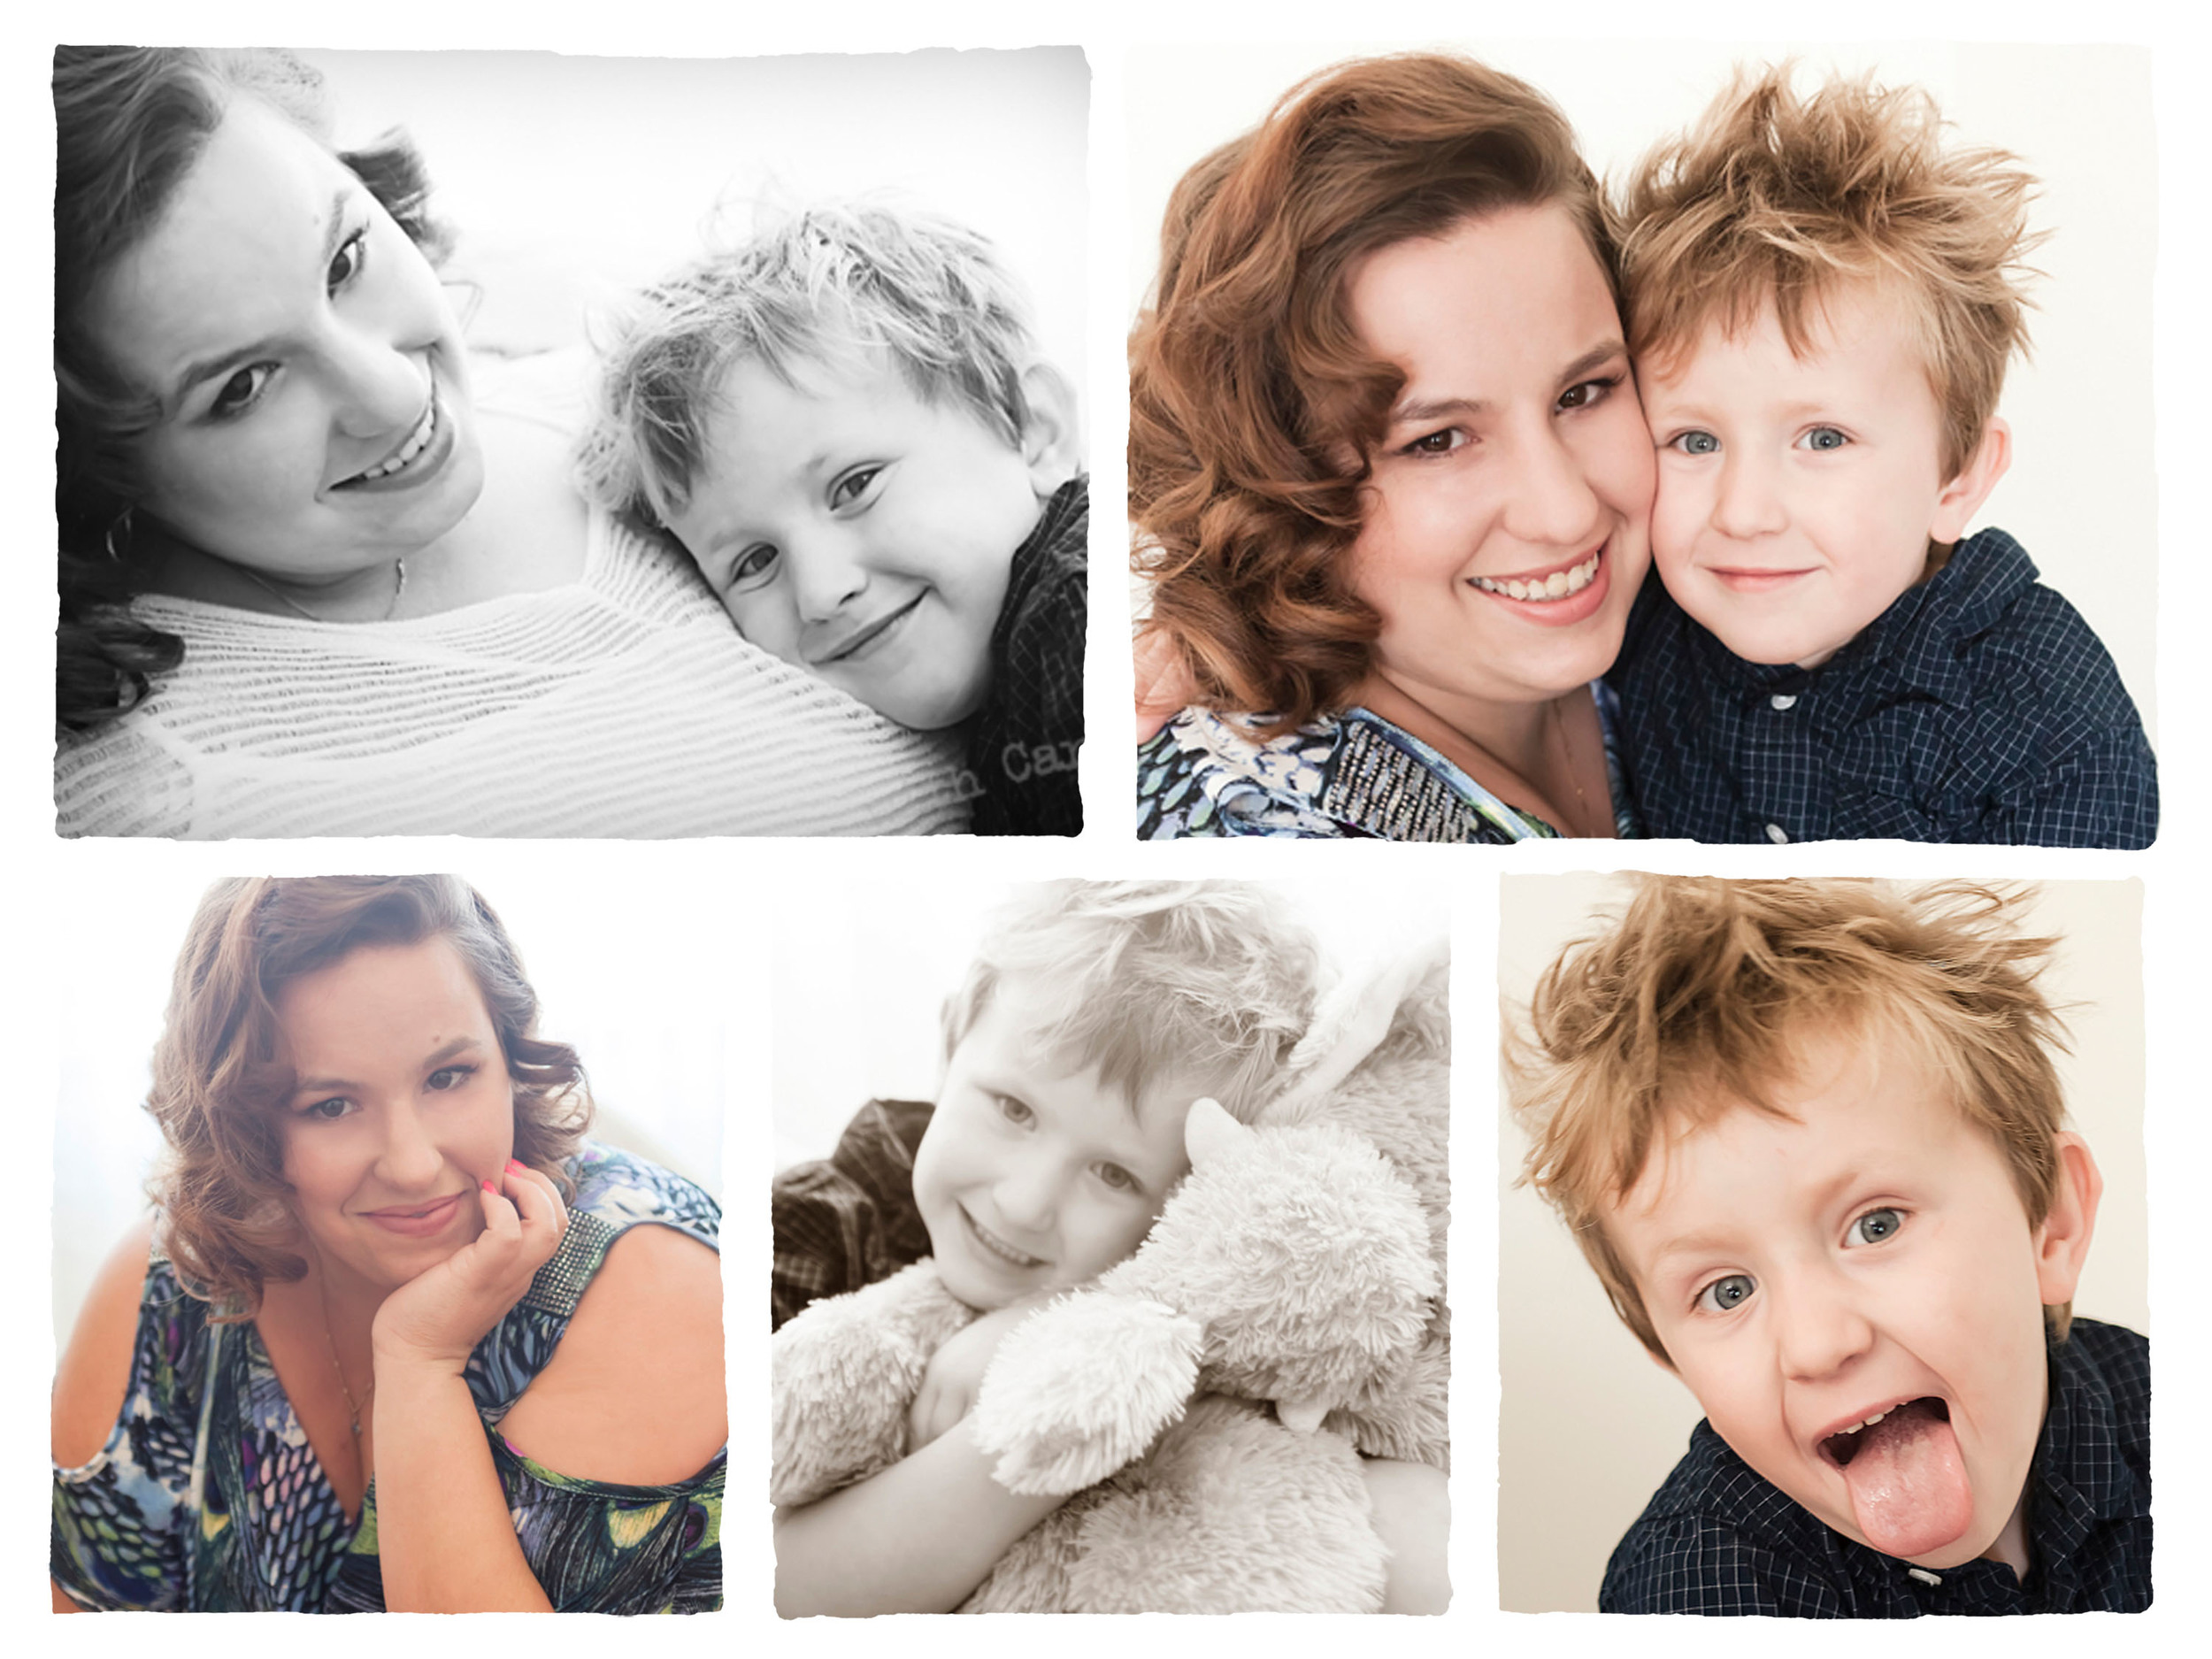 Such a close bond between this gorgeous mother and her adorable son. The memories it brings back of when my own children were little make this one of my favourite sessions ever!